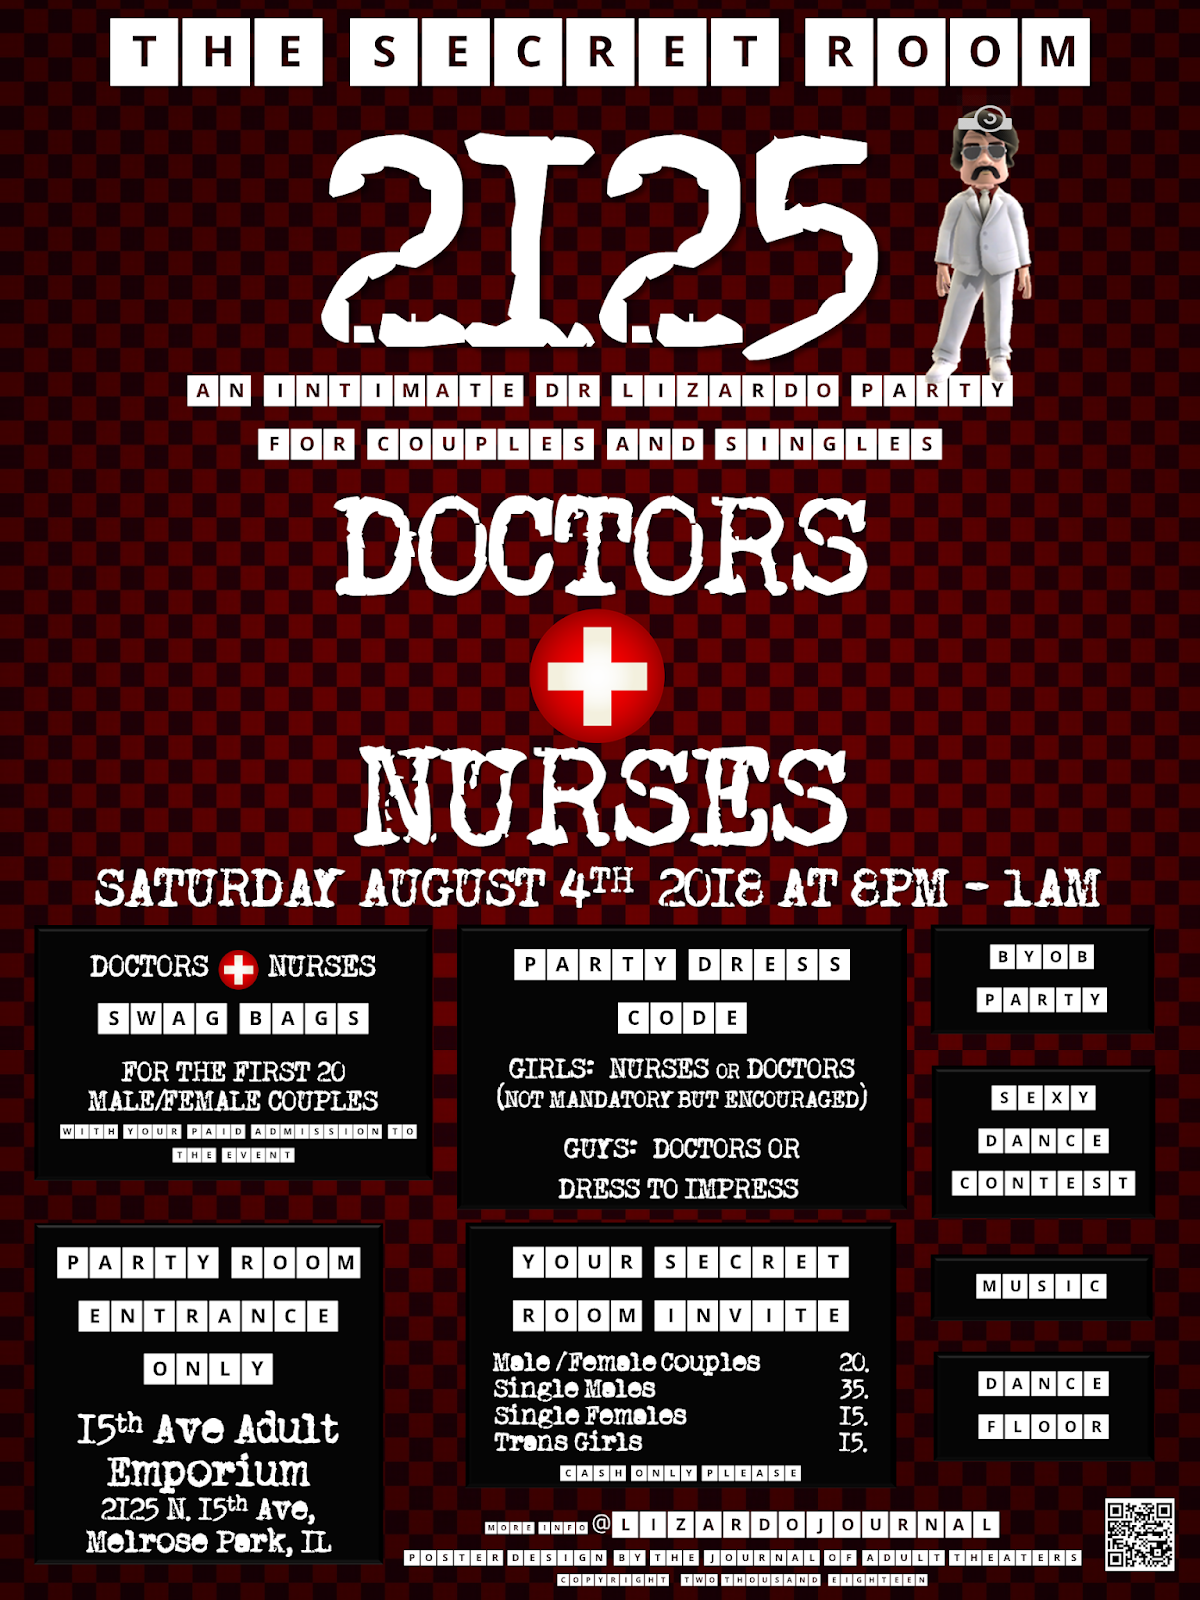 The Secret Room 2125: Docotrs & Nurses Party at 15th Ave. Adult Theater Party Room in Chicago!